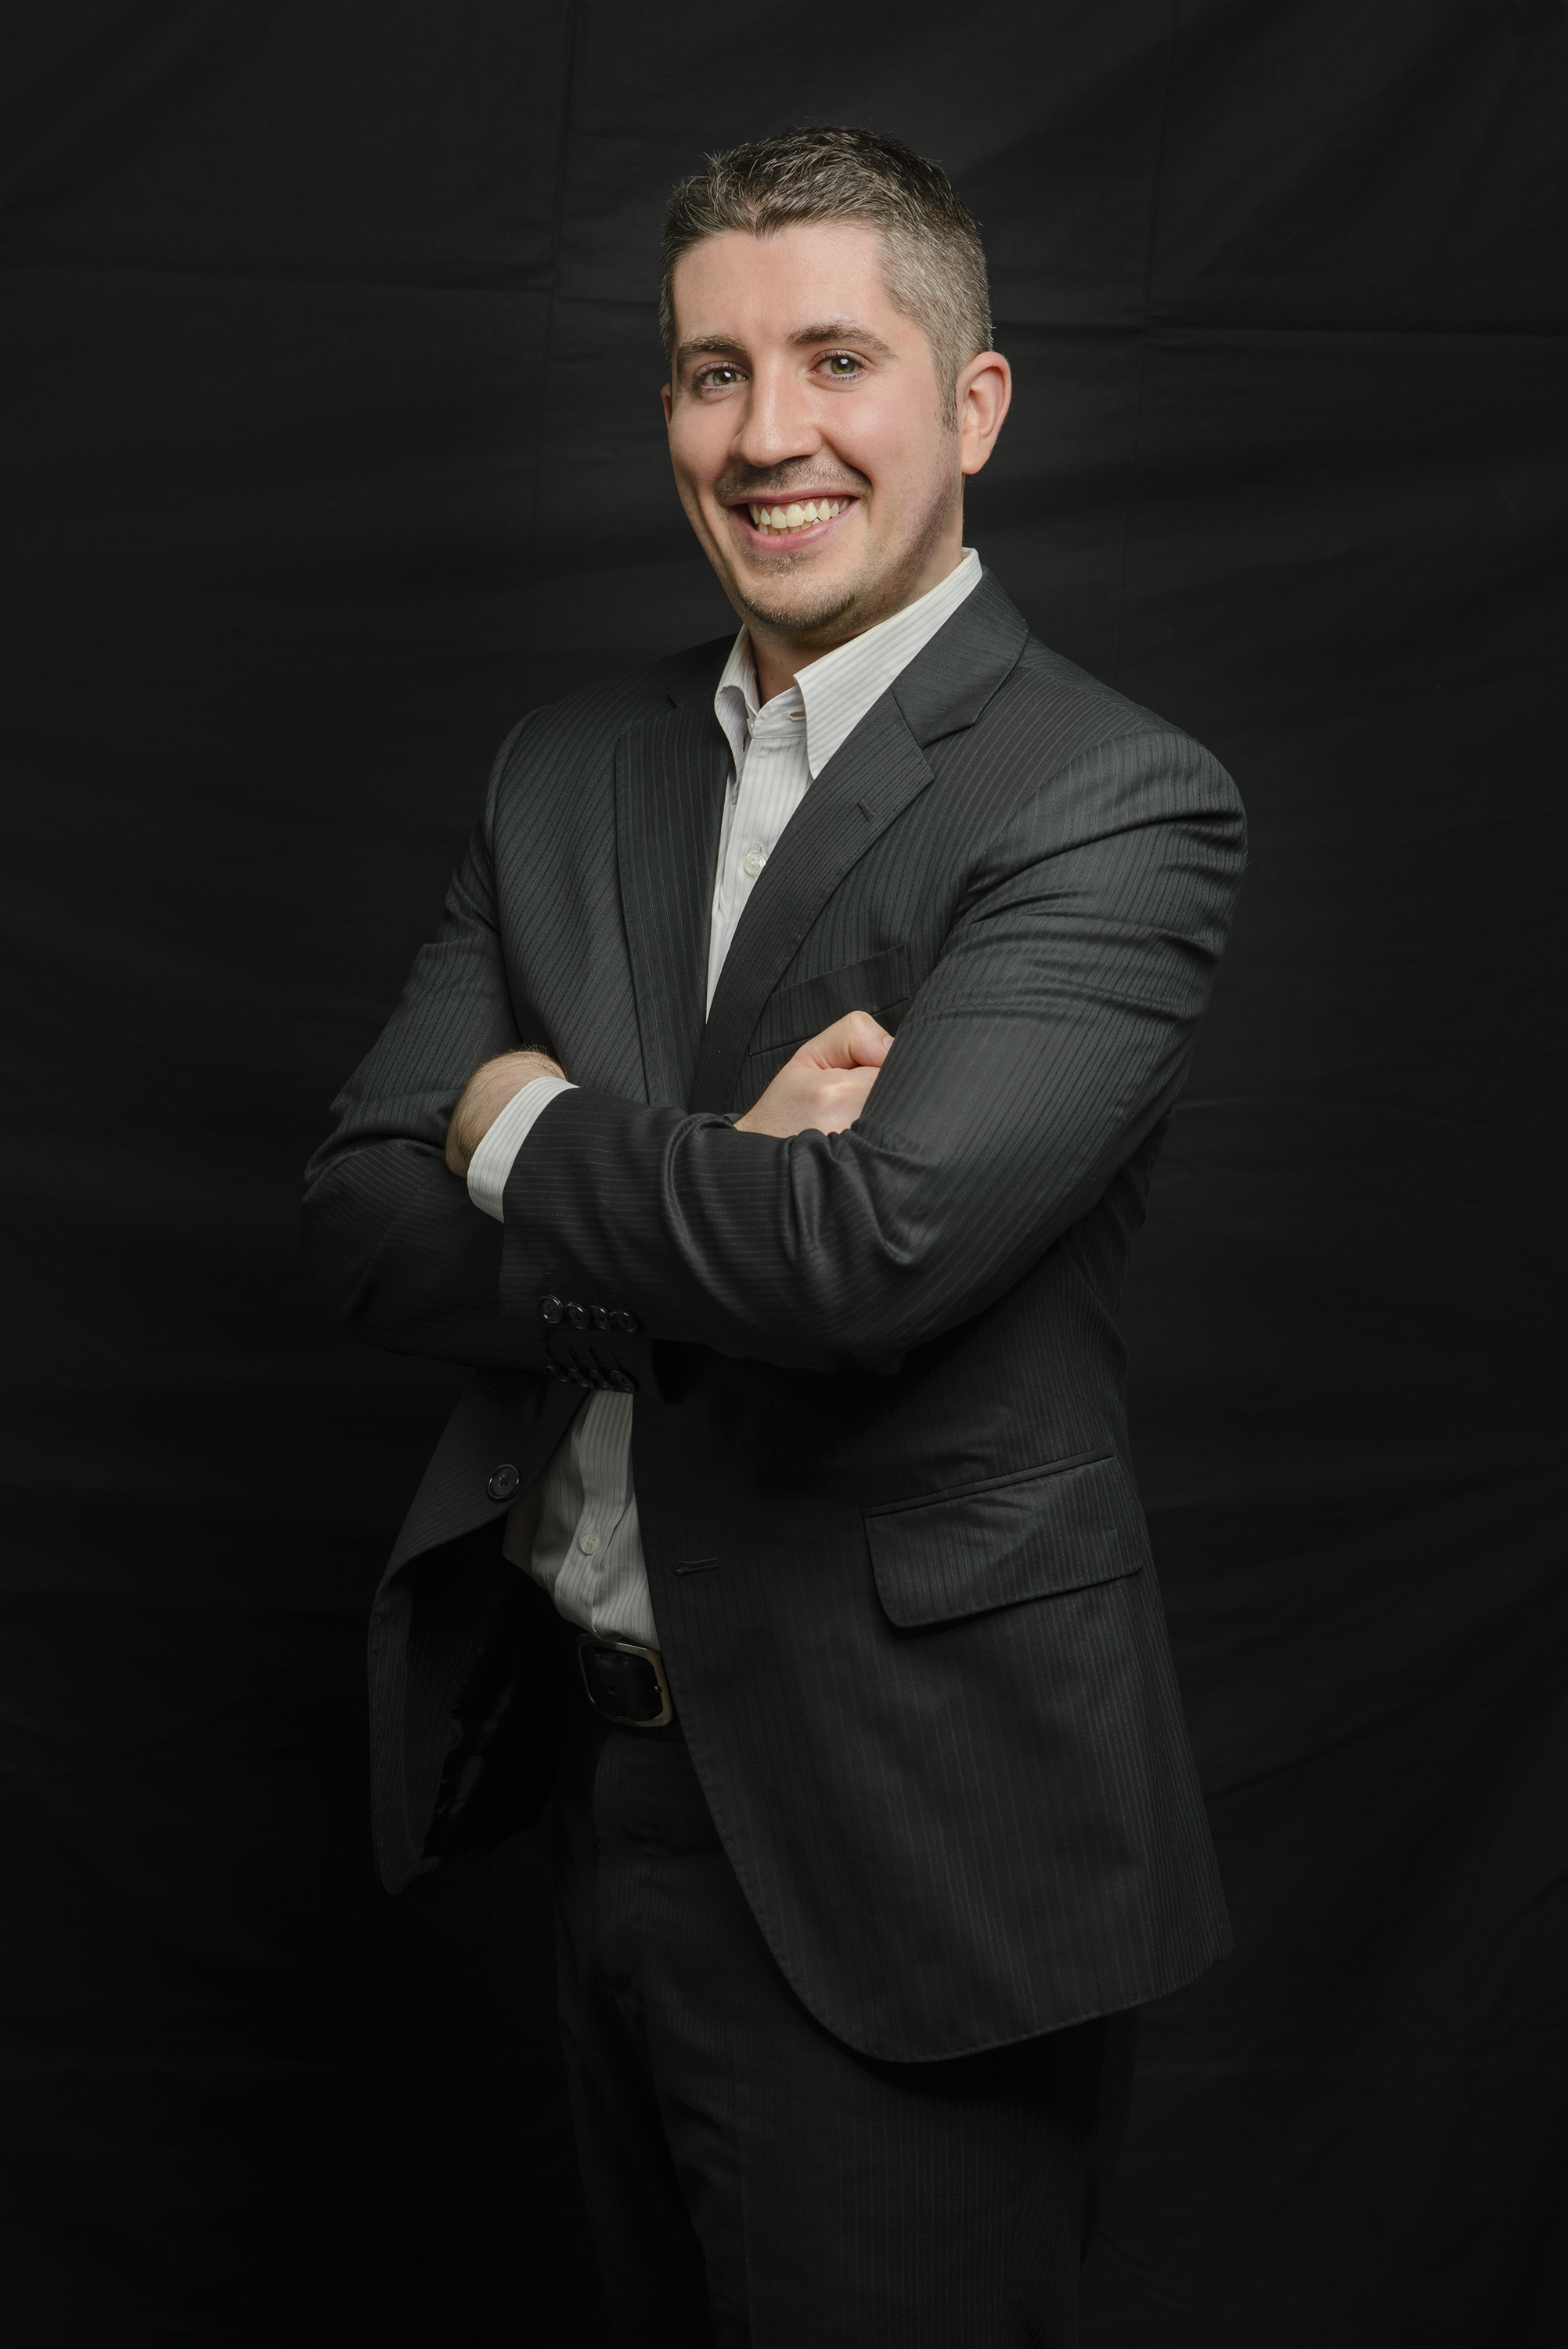 Portrait Corporate 1